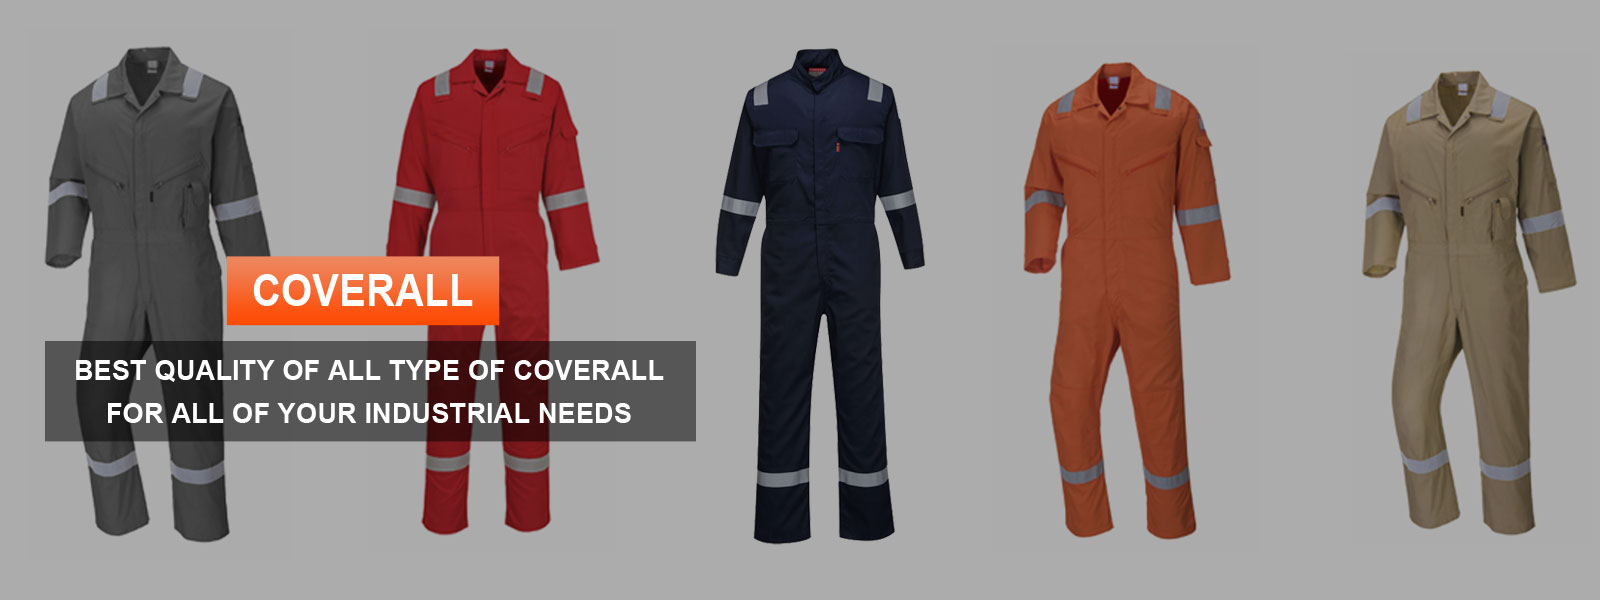 Coverall Manufacturers in Saint kitts and nevis